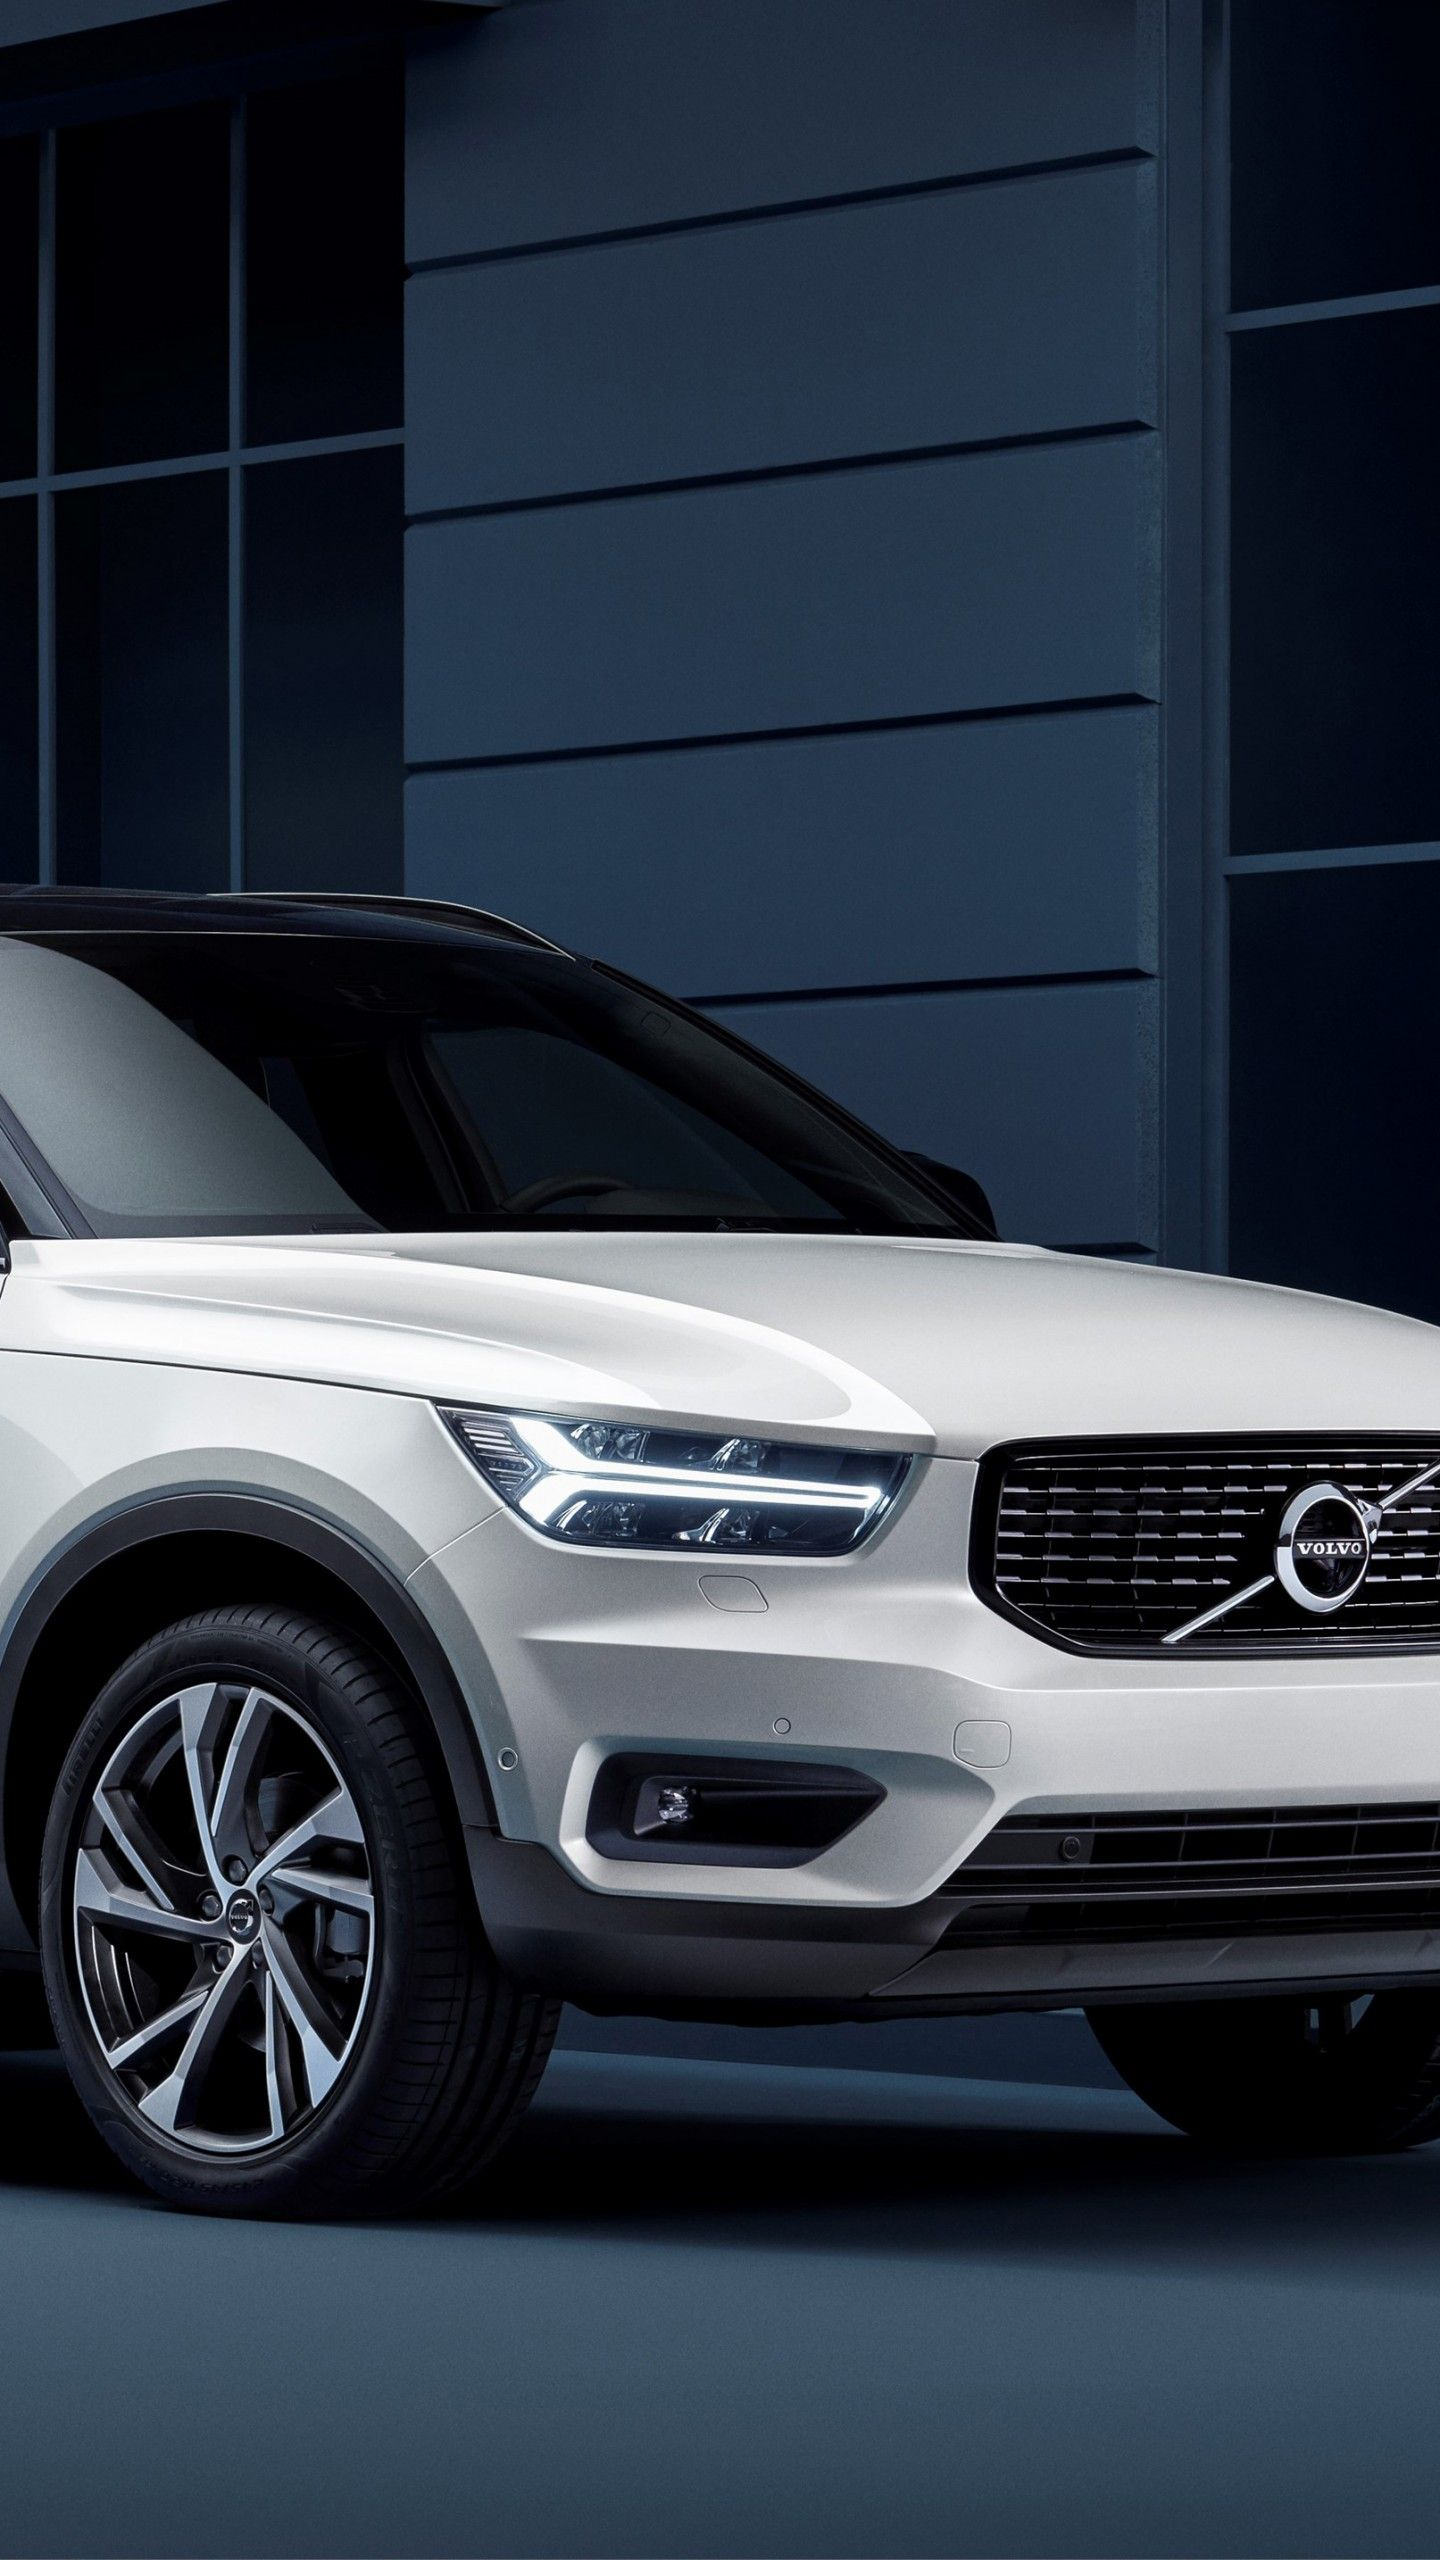 1440x2560 Volvo Iphone Wallpaper - (57+) Group Wallpapers